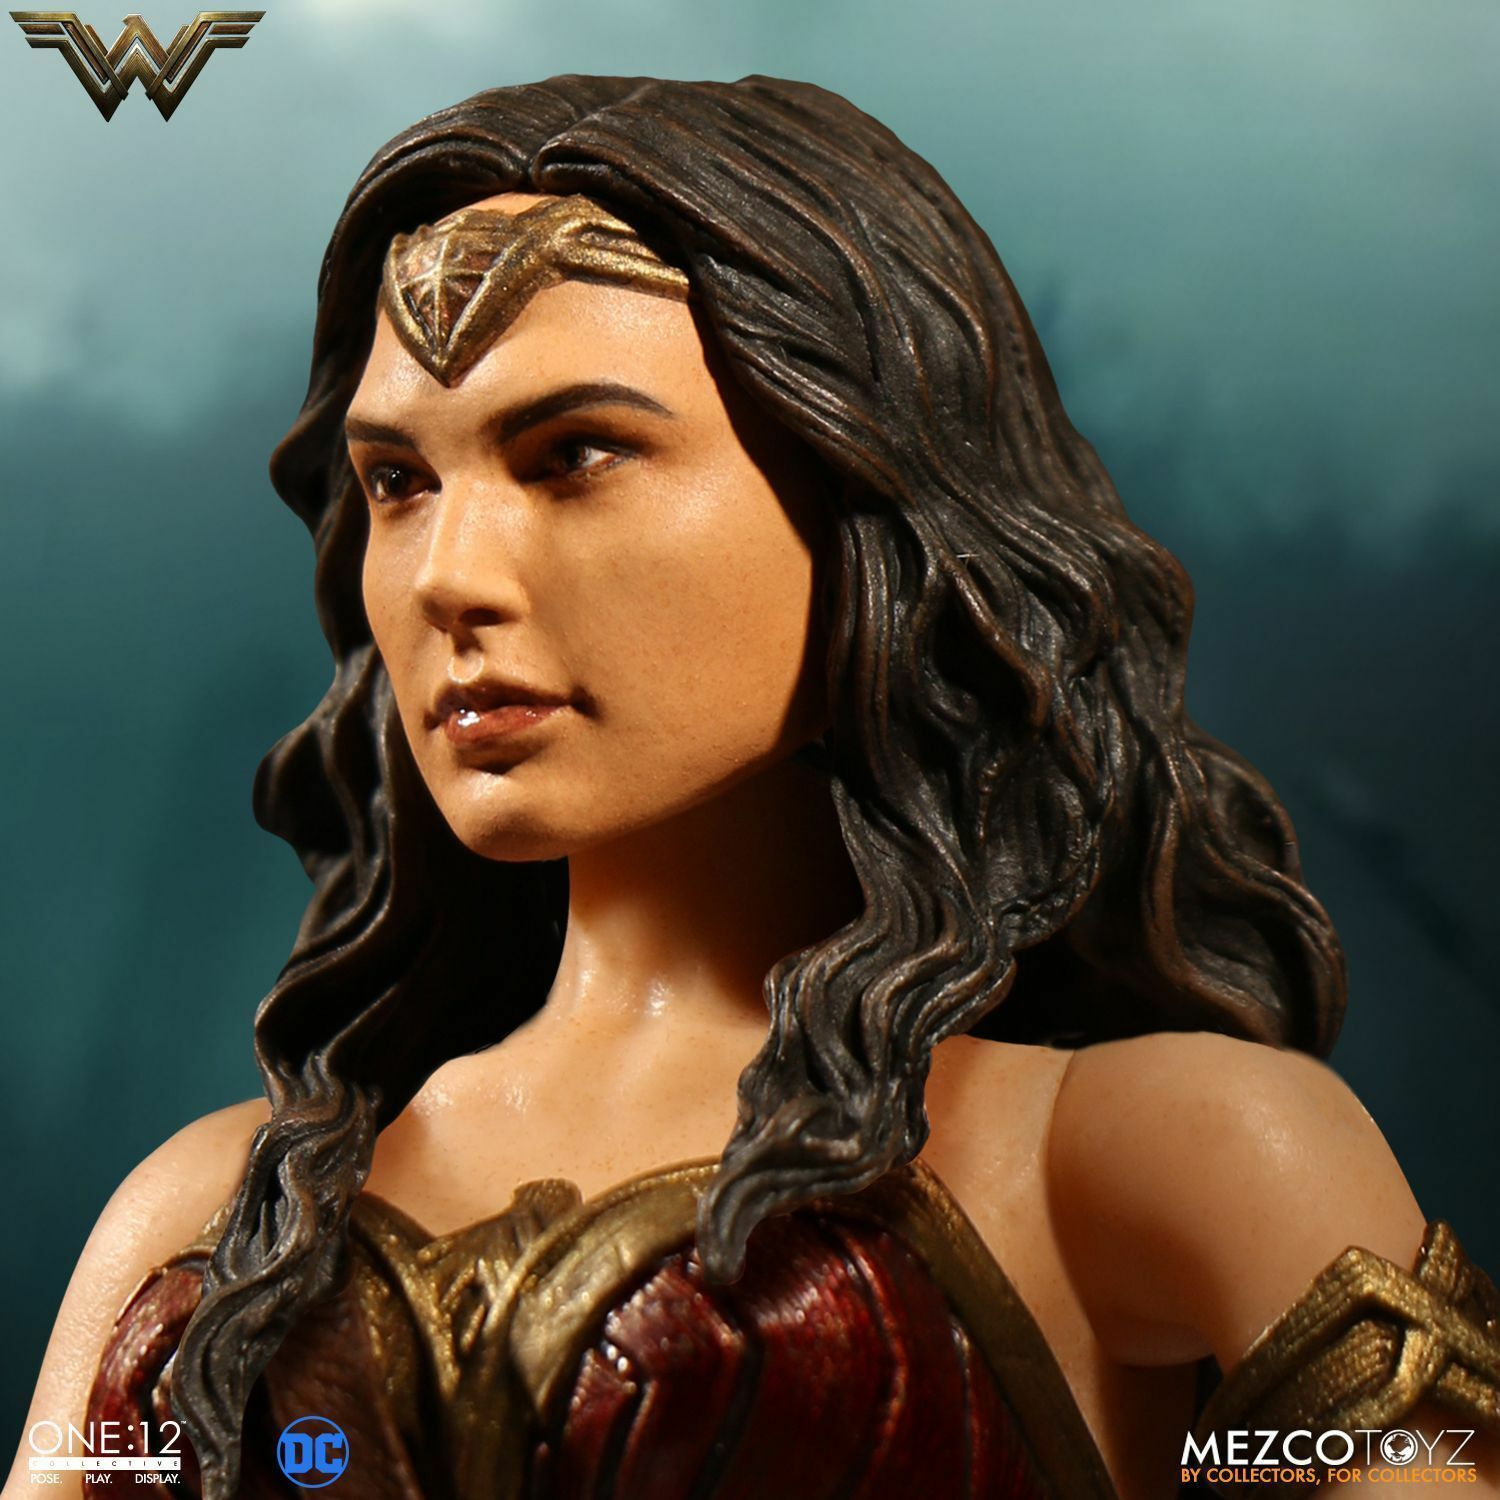 "Mezco Wonder Woman Movie One:12 Collective 6"" Action Figure Brand New In Stock! on eBay thumbnail"